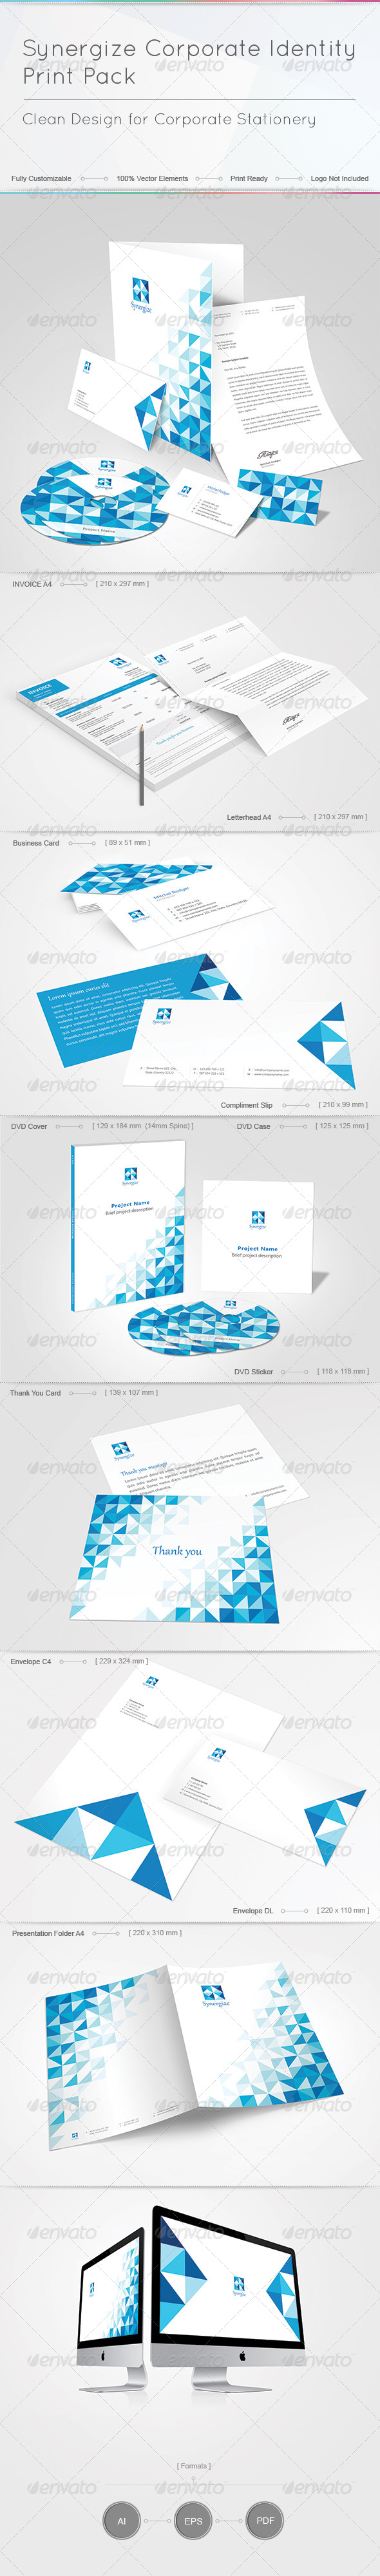 GraphicRiver Synergize Corporate Identity Print Pack 4787752